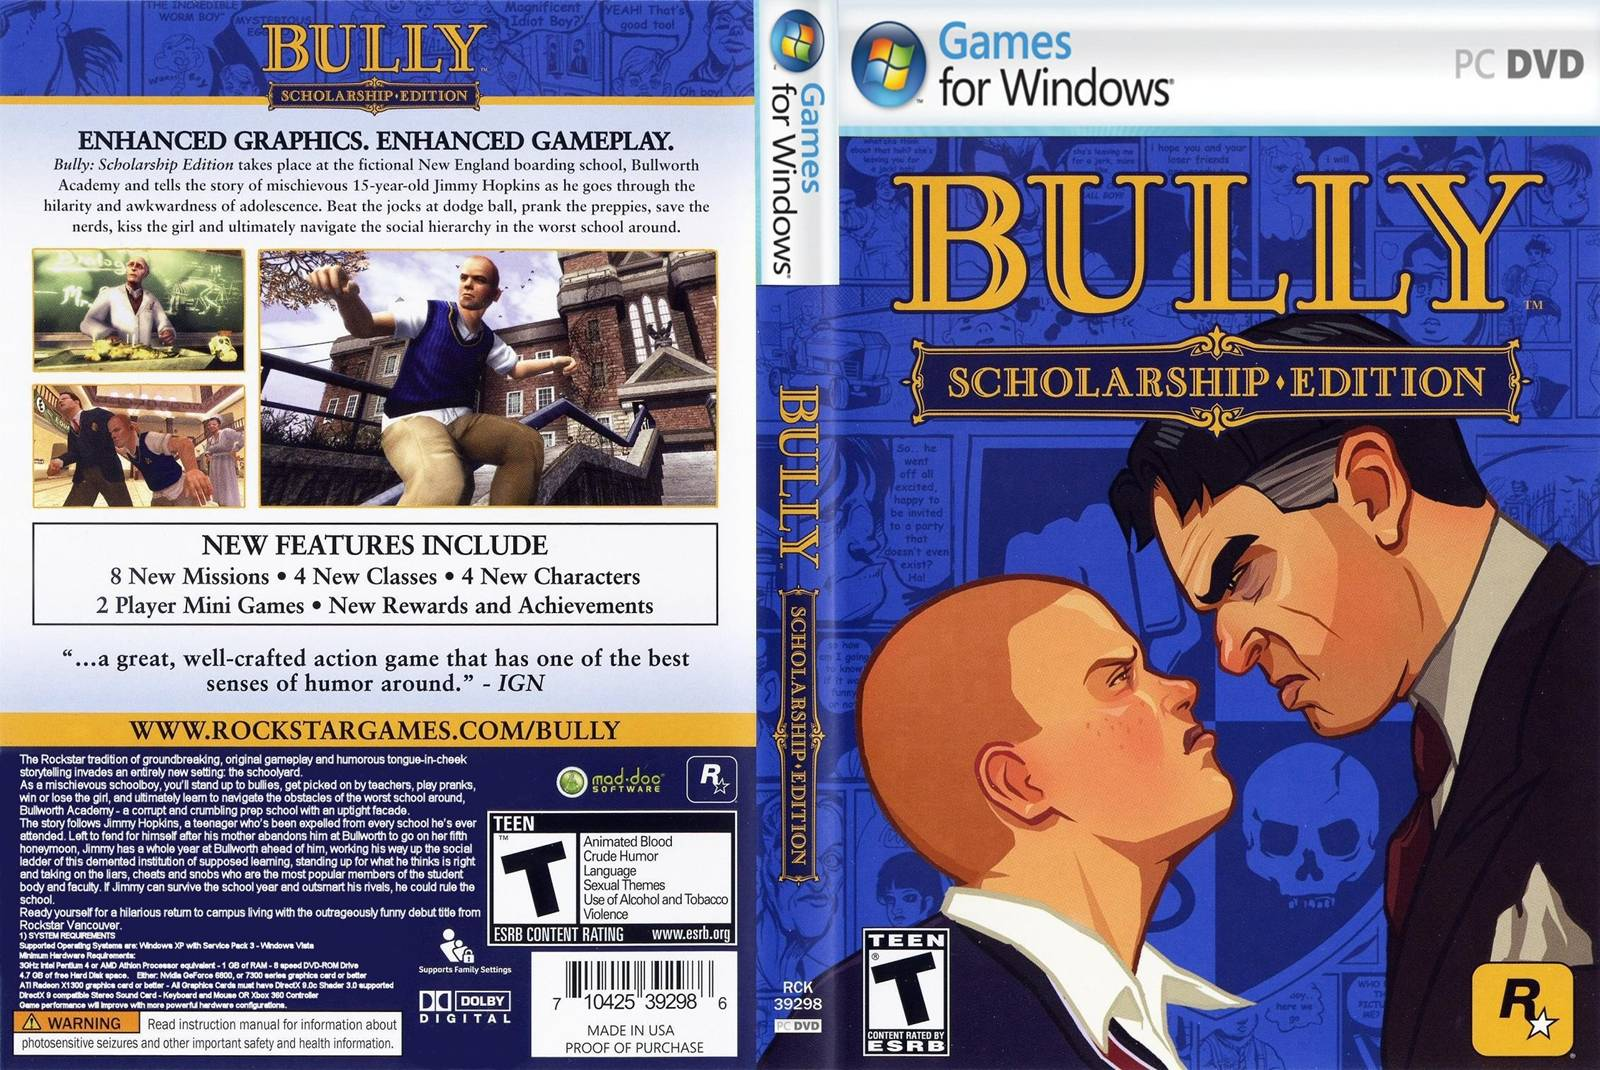 download bully scholarship edition pc Download Bully Scholarship Edition PC bully scholarship edition pc capa